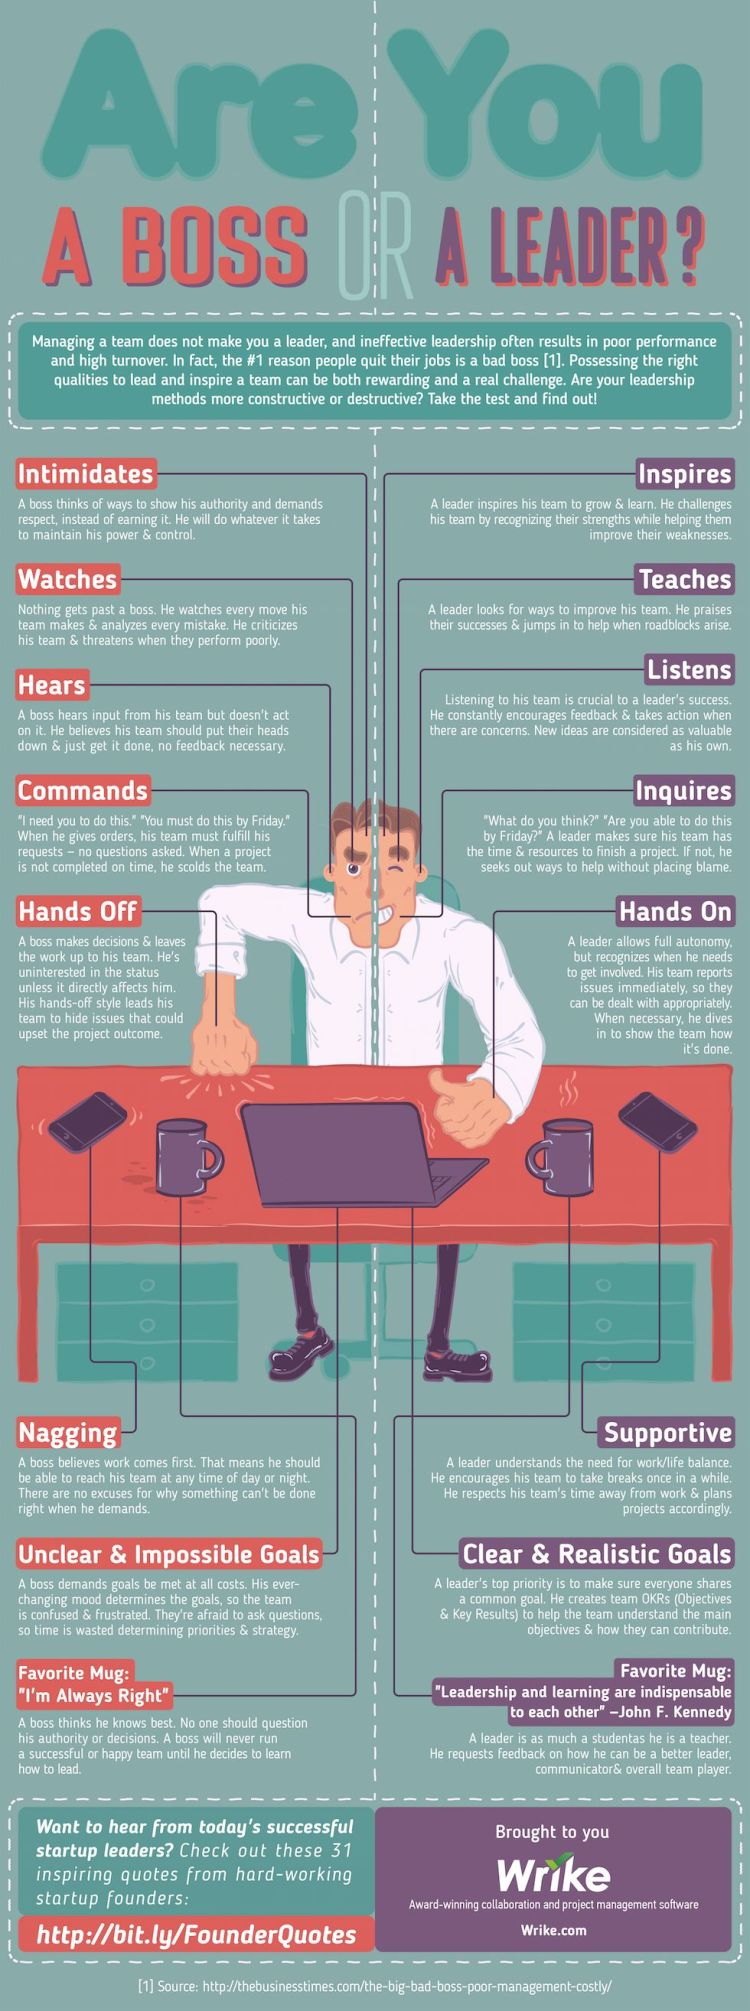 Are You a Boss or a Leader #infographic